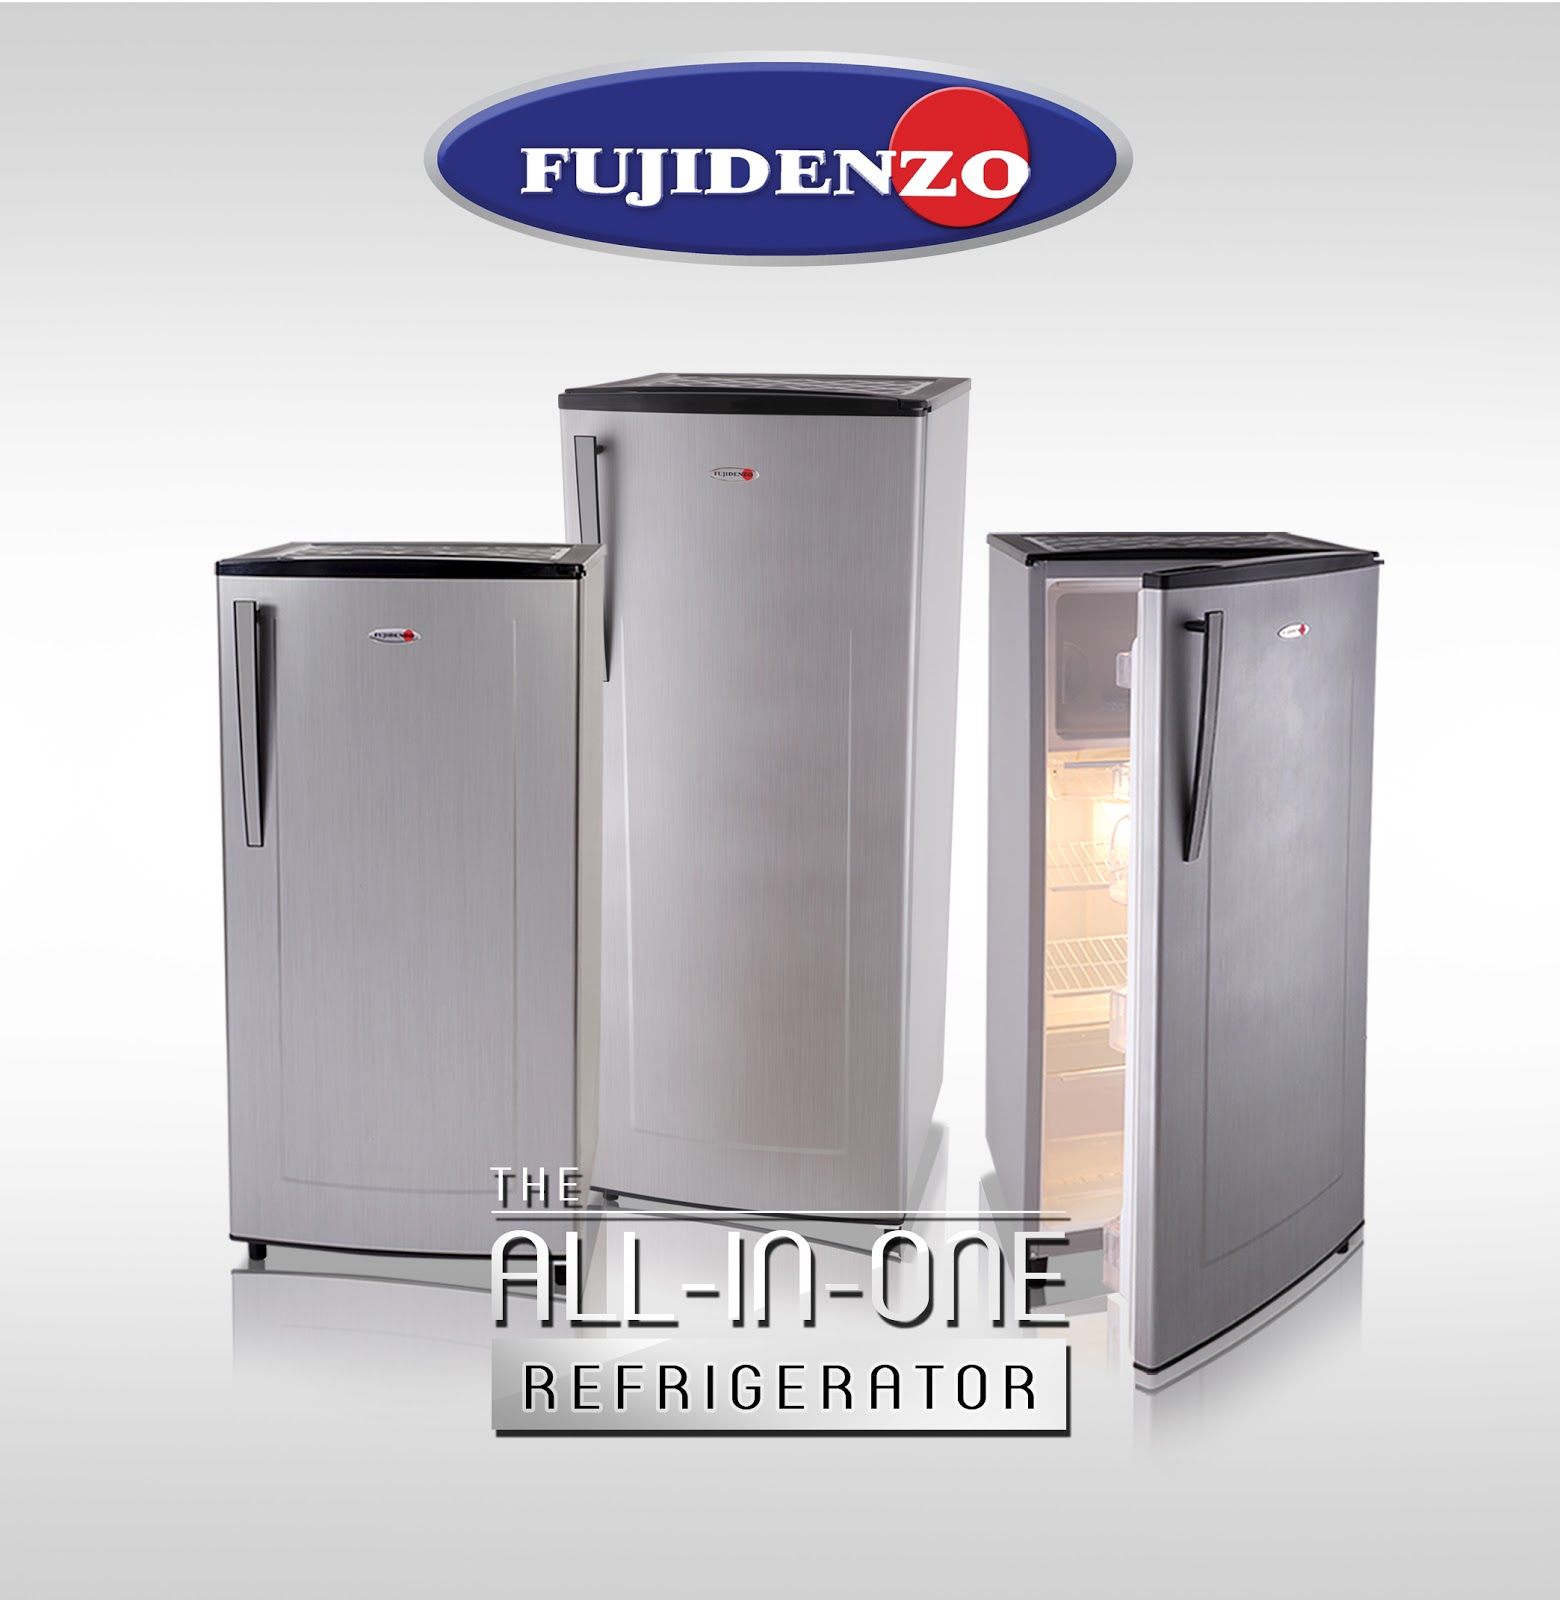 Introducing Fujidenzo's All-In-One Refrigerators